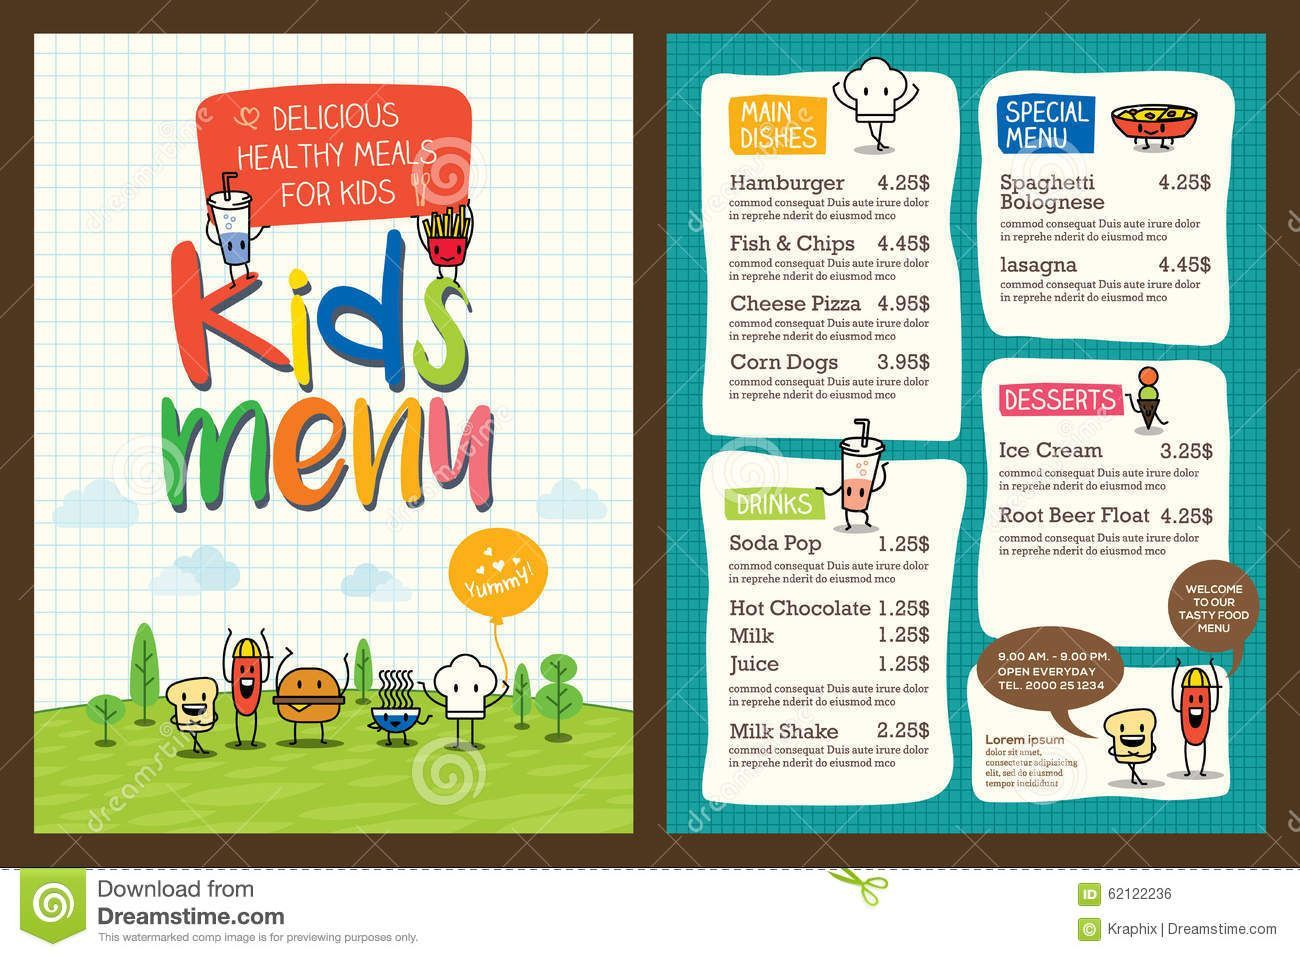 Cute Colorful Kids Meal Menu Template Stock Vector - Illustration of fork, concept: 62122236,  #colorful #concept #Cute #Fork #freshseafood #Illustration #kids #meal #Menu #seafooddinner #seafoodmenu #seafoodrecipes #Stock #template #vector